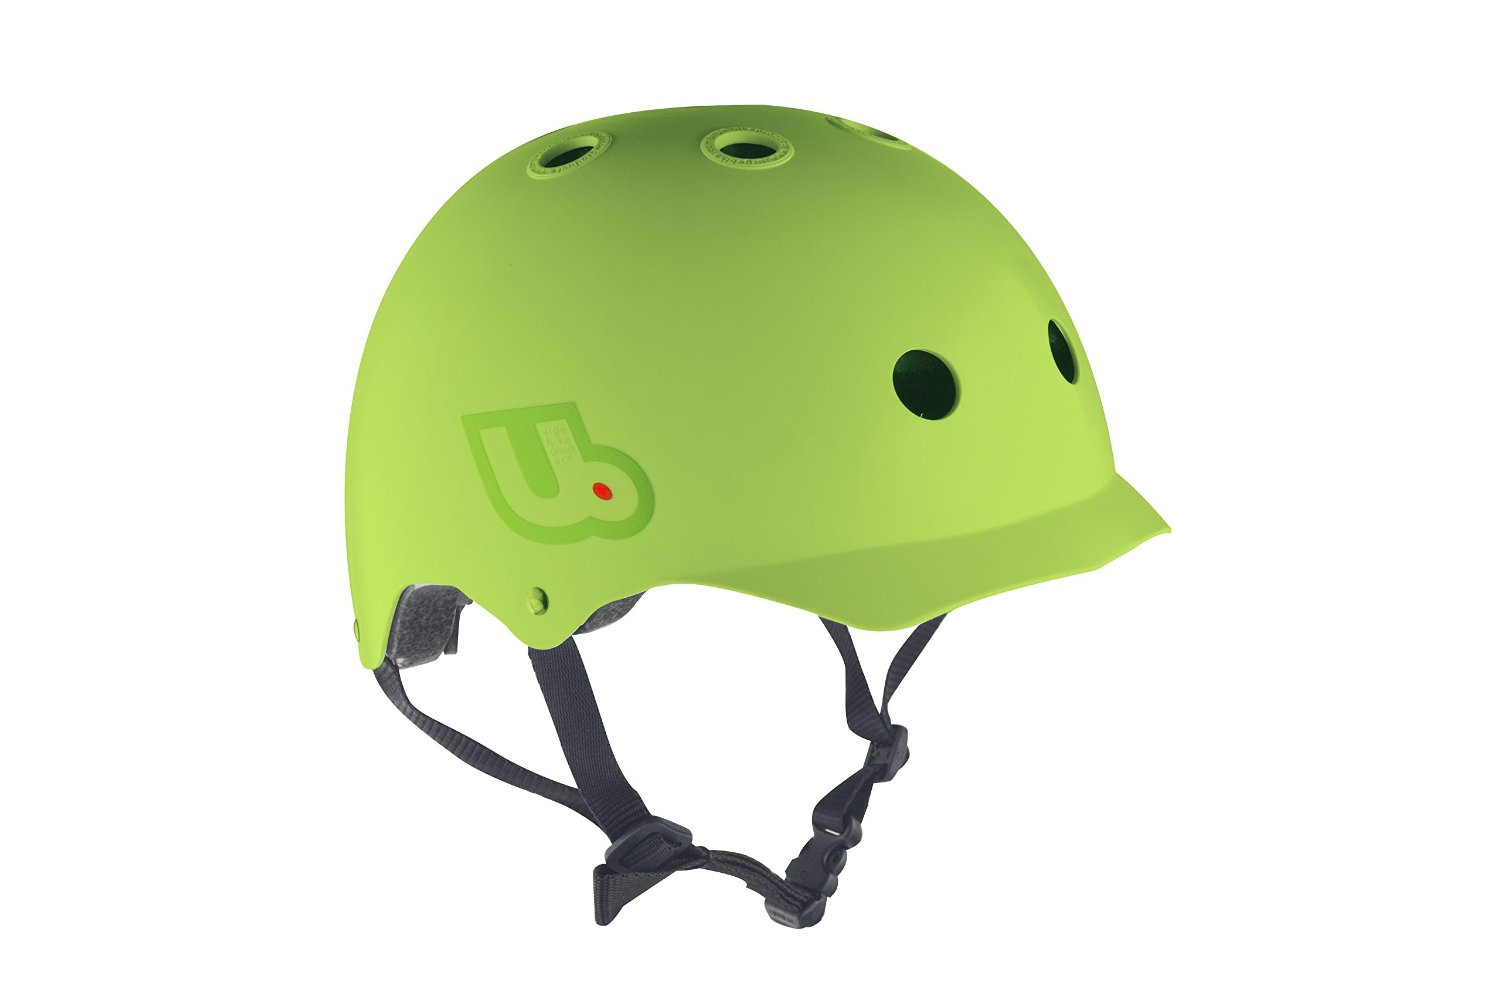 Medium Urge Bike Products Bicycle Helmets